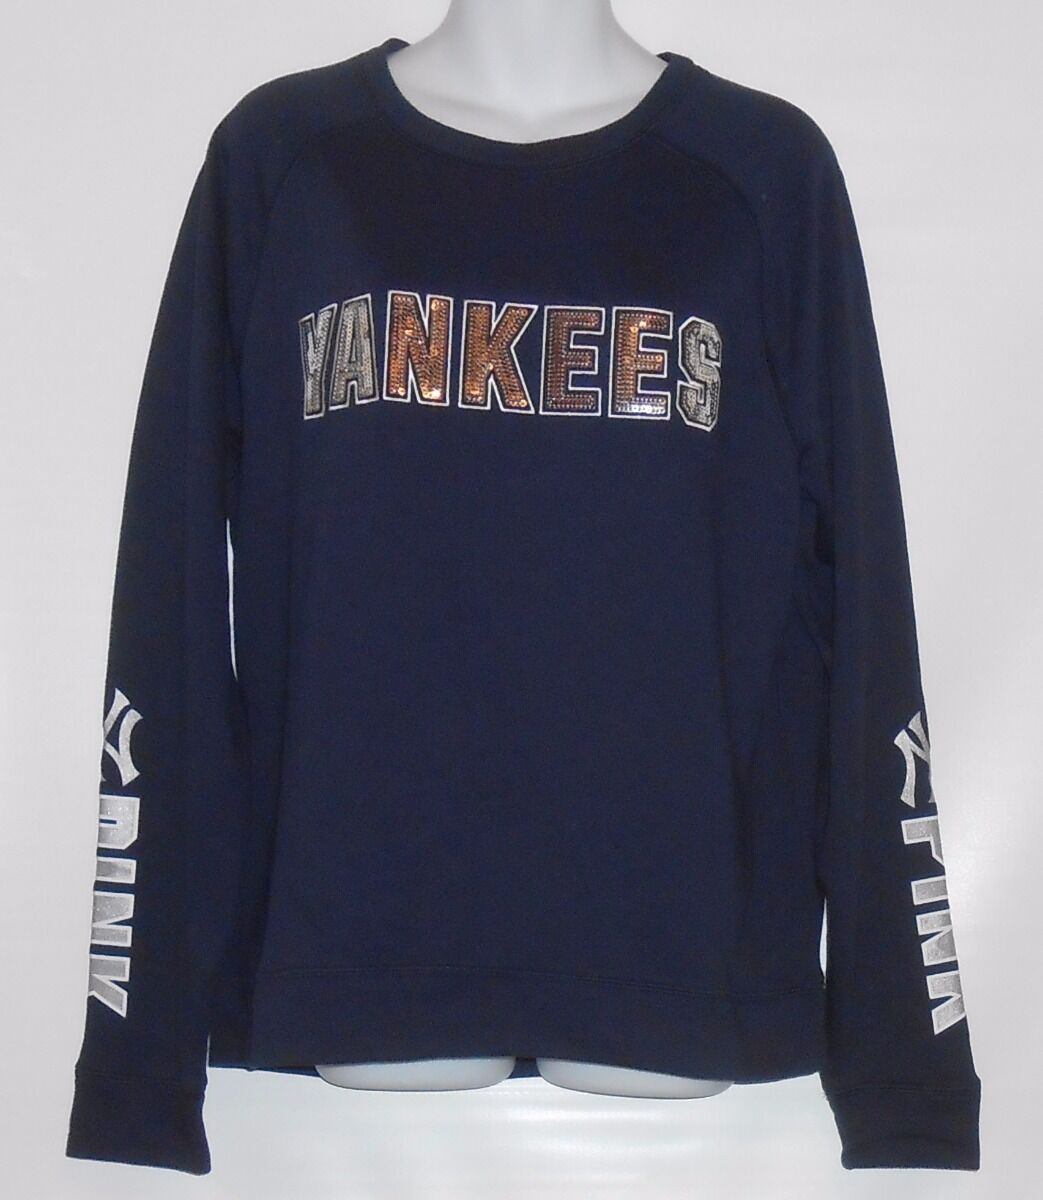 Victoria's Secret Rosa Bling Sequin New York Yankees Crew Blau Large (L) NWT